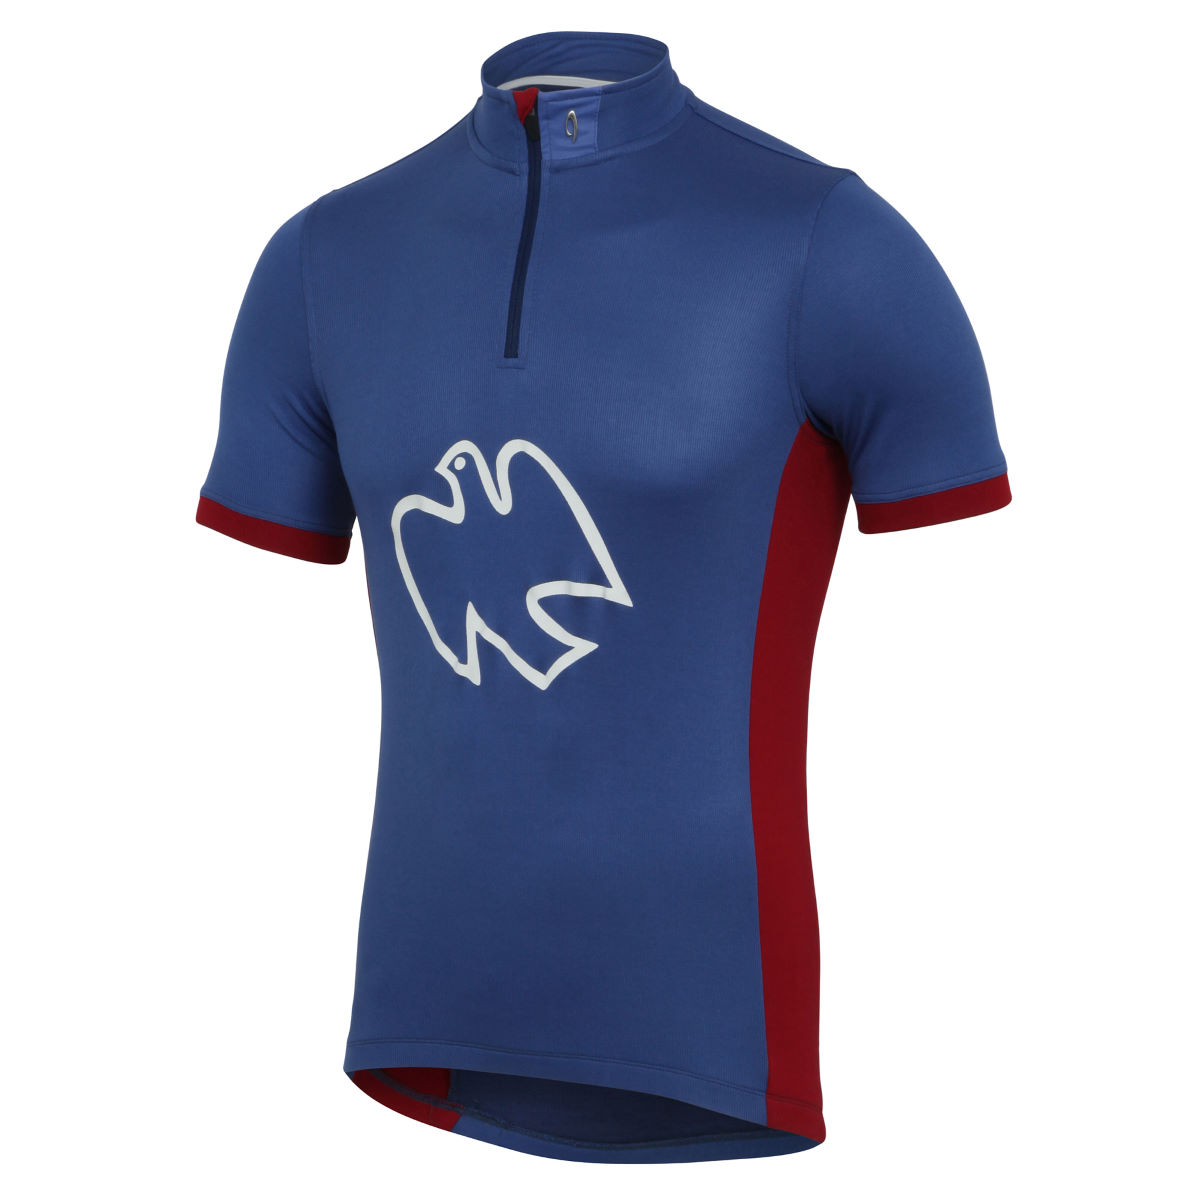 Maillot Isadore Peace (manches courtes) - X Small Tarmac Grey